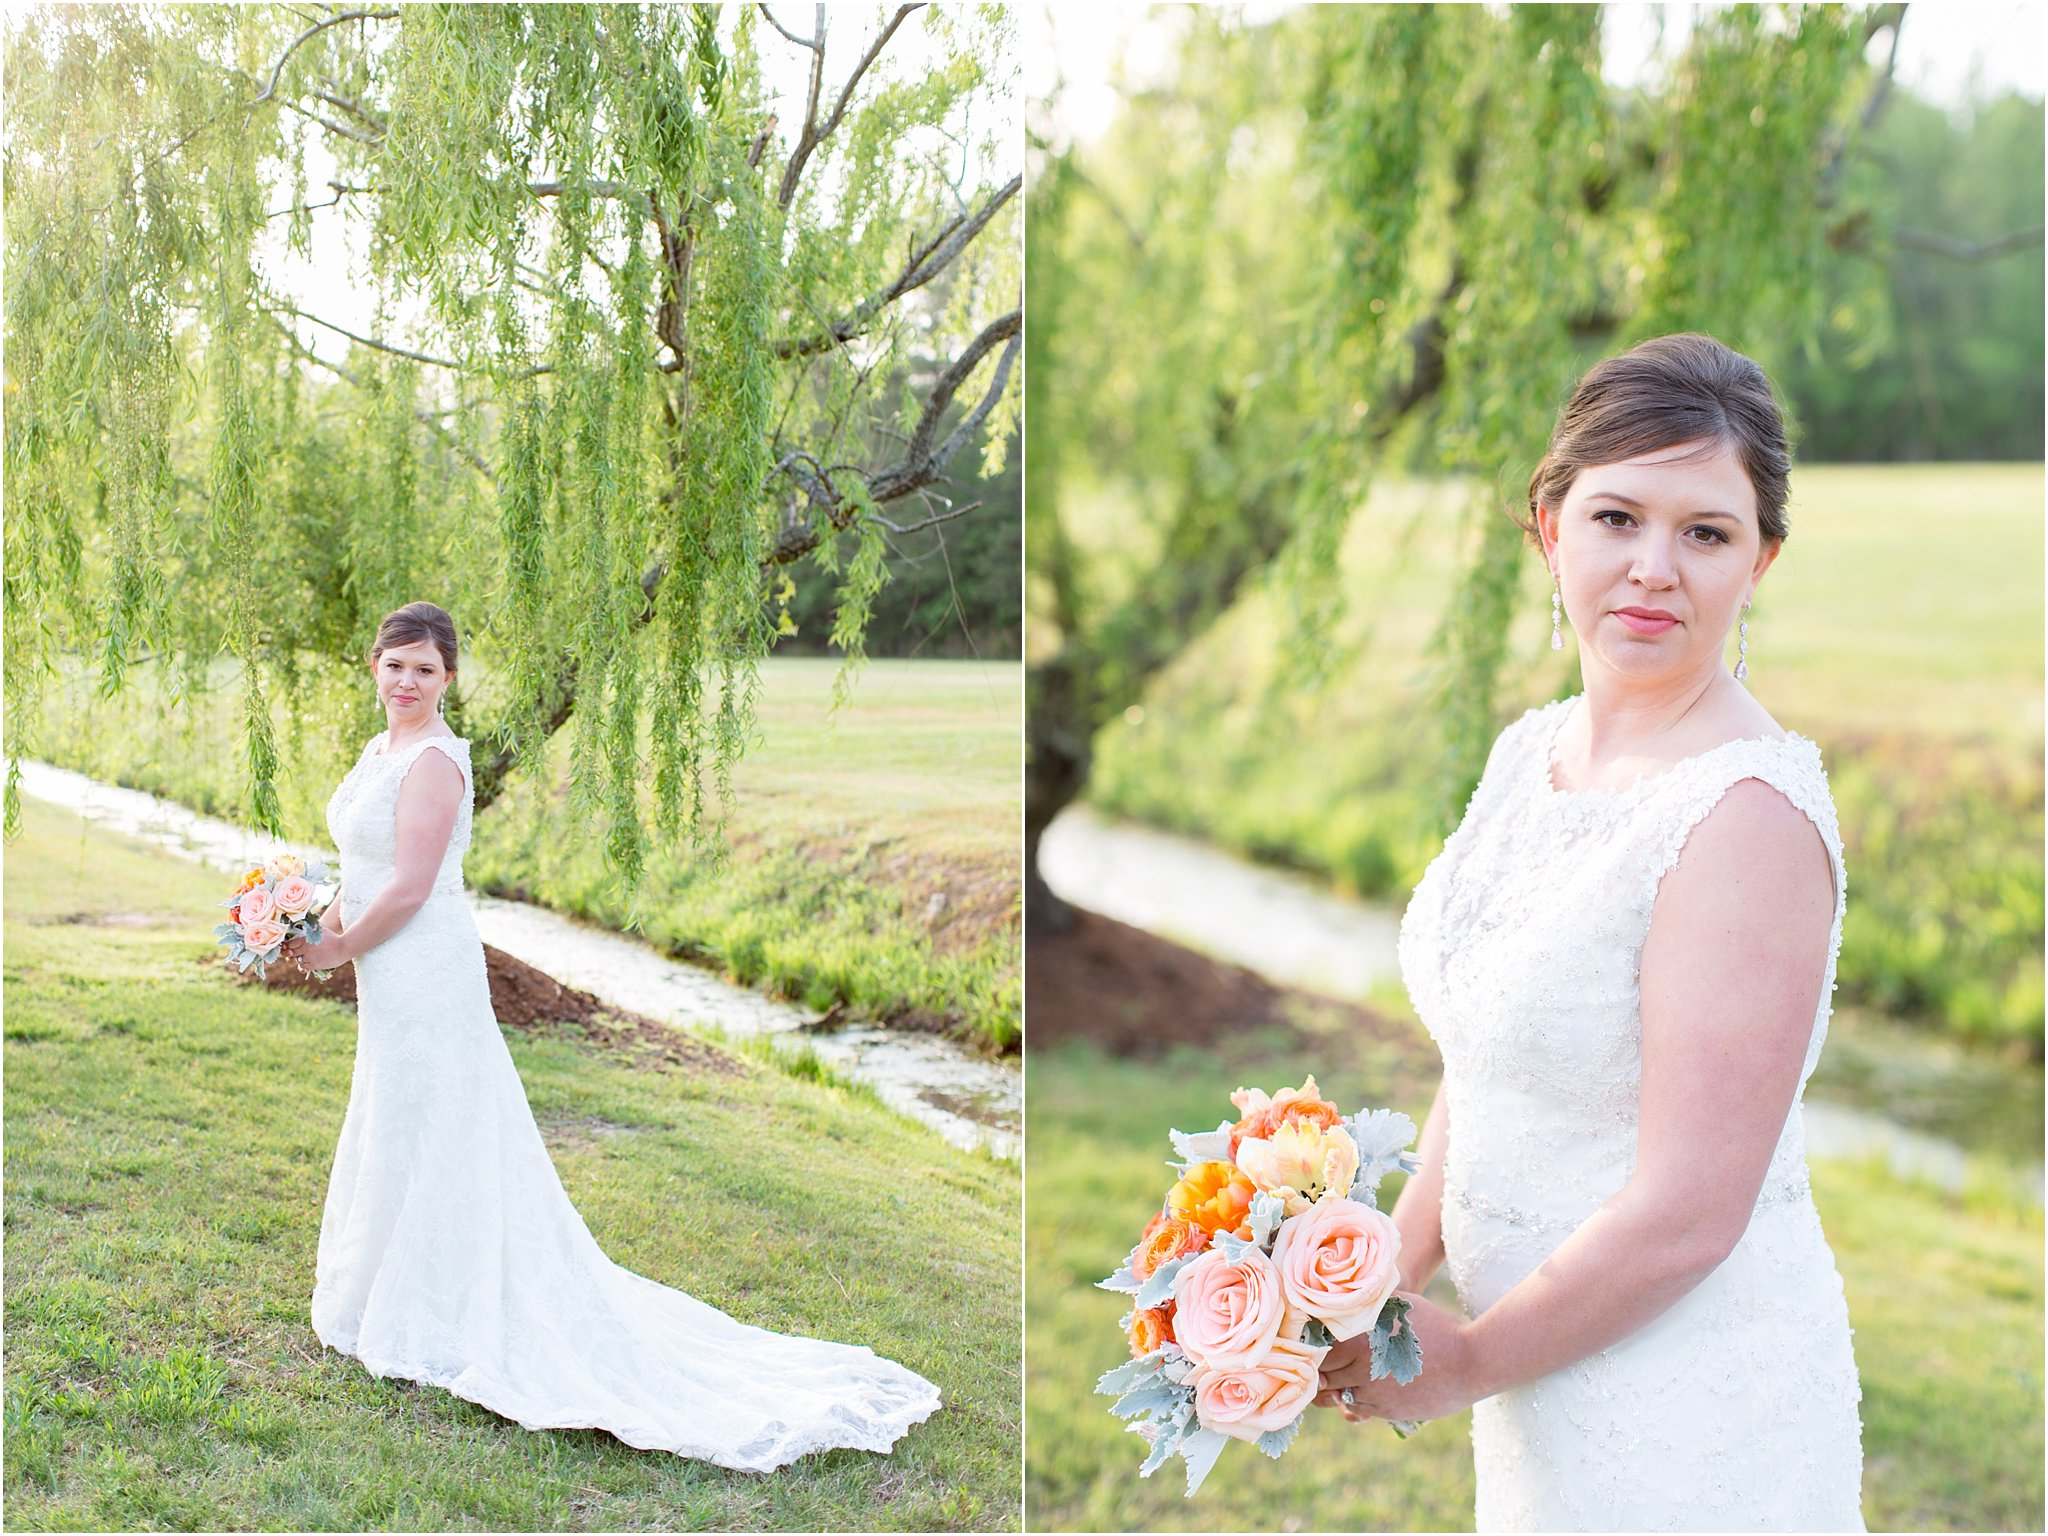 jessica_ryan_photography_holly_ridge_manor_wedding_roost_flowers_jamie_leigh_events_dhalia_edwards_candid_vibrant_wedding_colors_1327